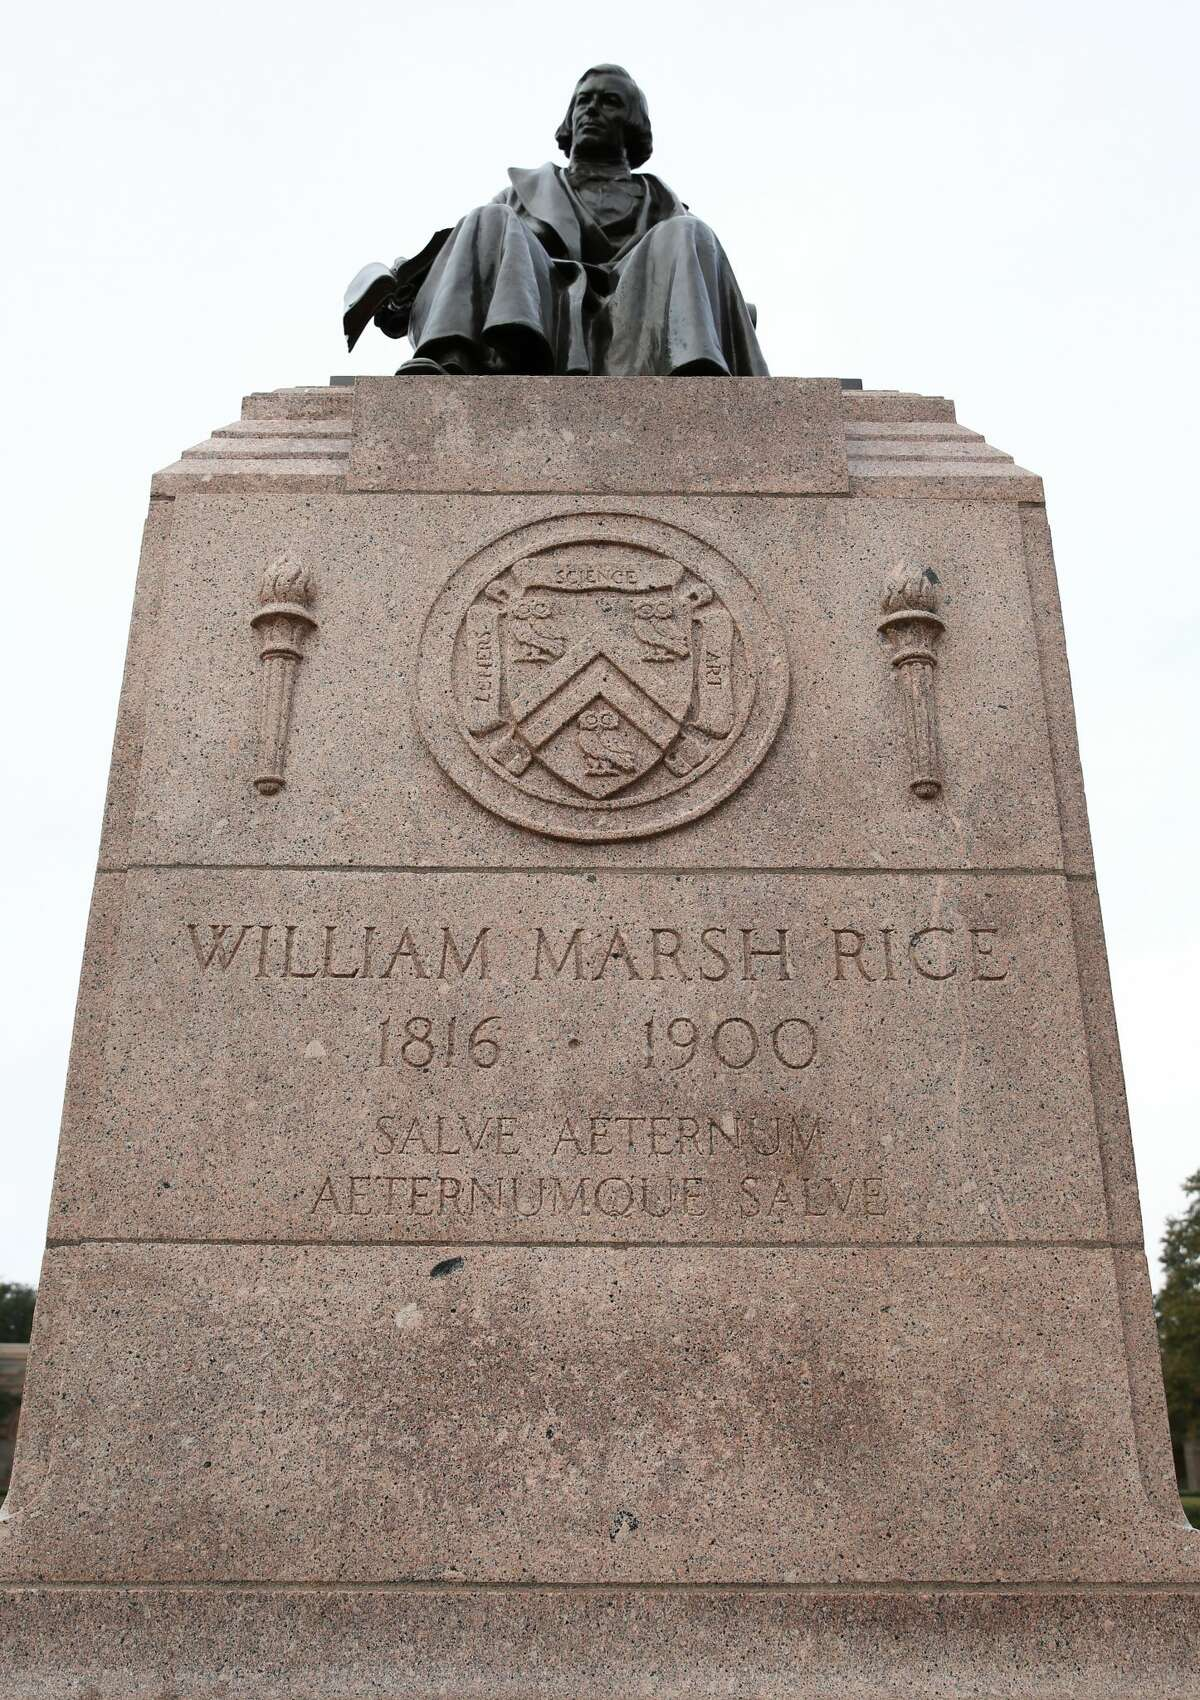 Vandals hit the founder's statue at Rice University with graffiti. It appears that the swastika that was drawn on Rice University's William Marsh Rice statue has been removed on Sunday, February 5, in Houston.